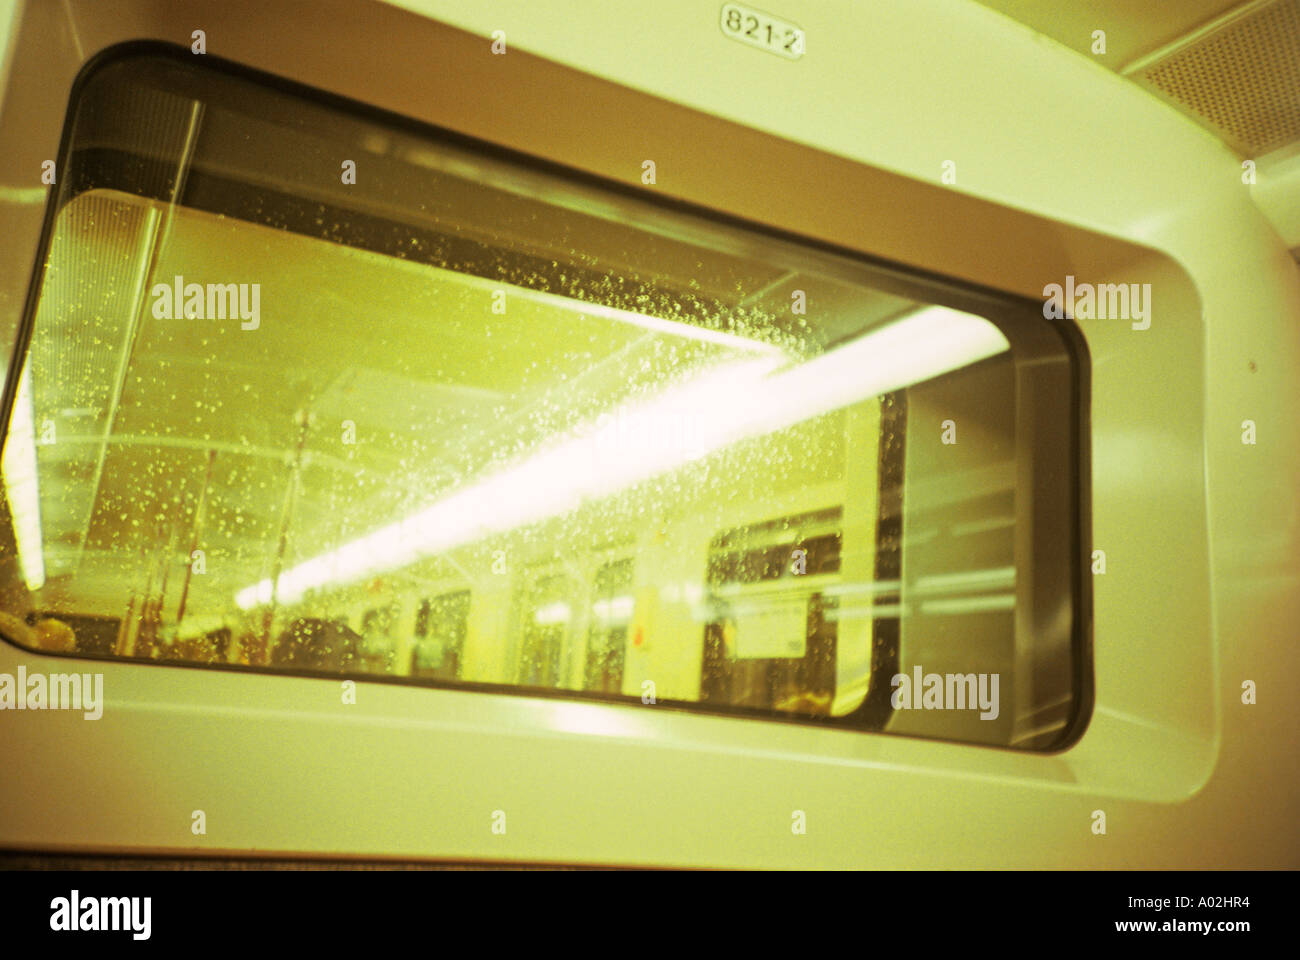 U-BAHN IN HAMBURG - Stock Image